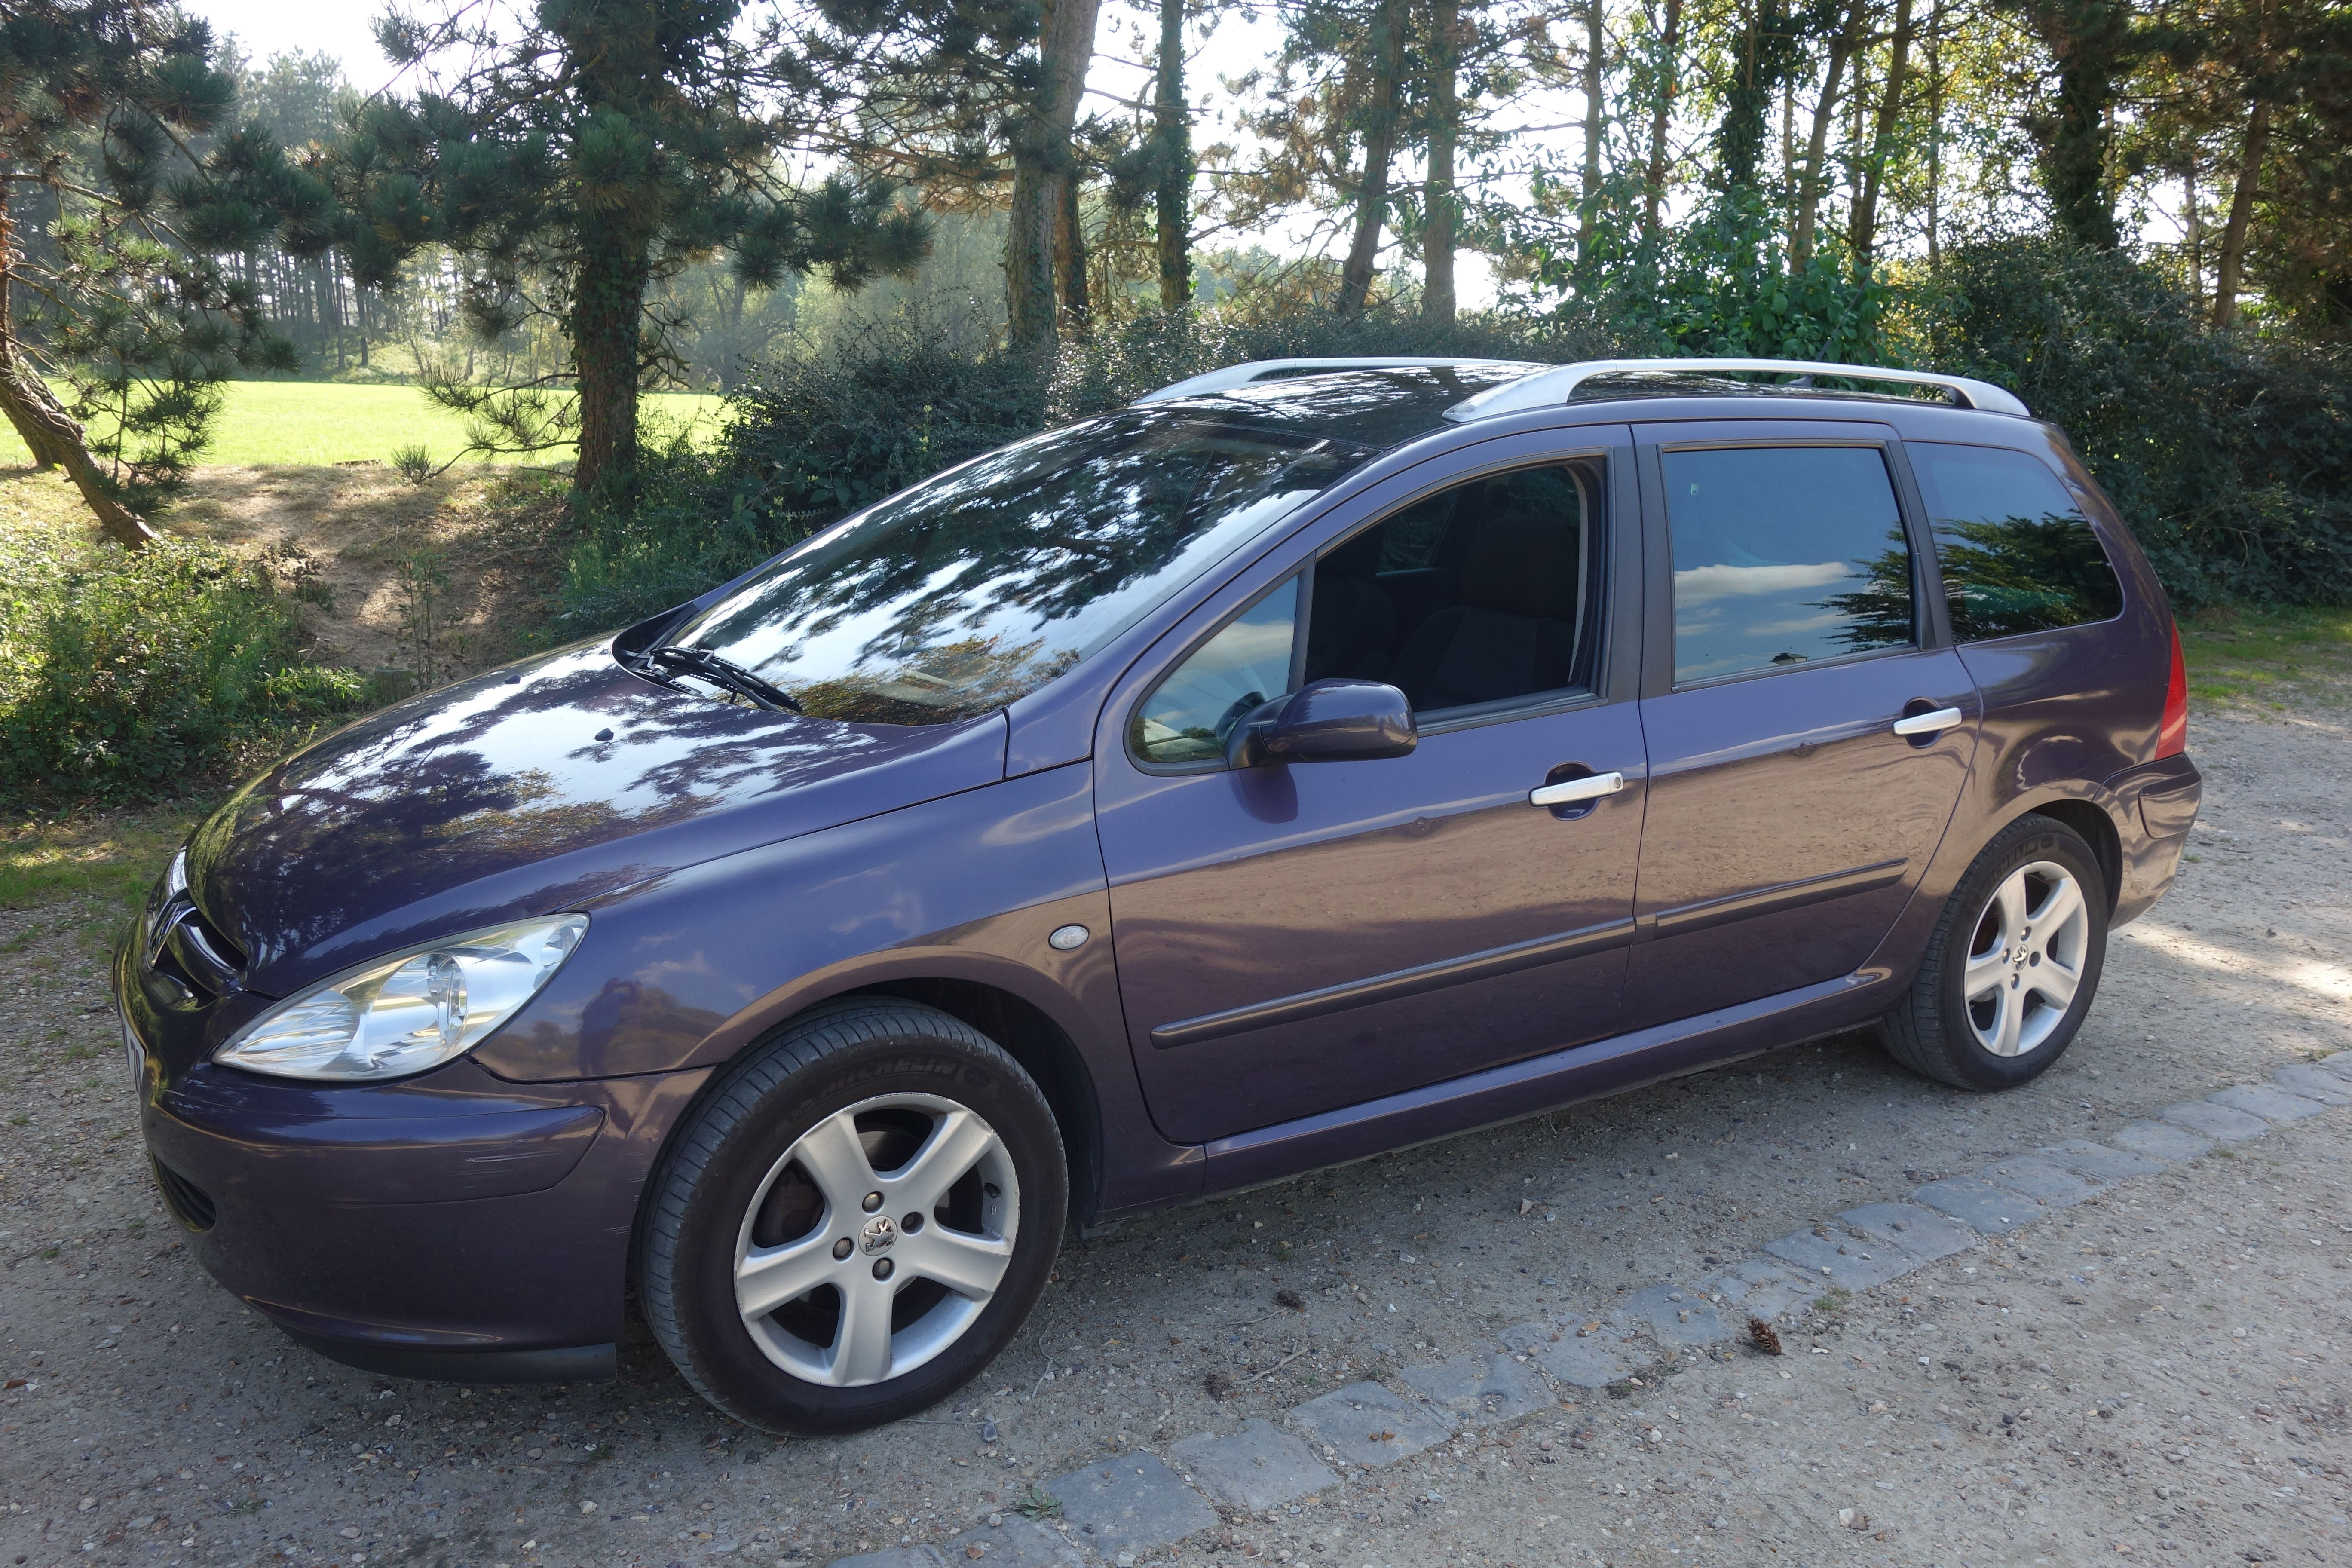 Peugeot 307 SW 2.0 HDI, 2003, Diesel, 7 places